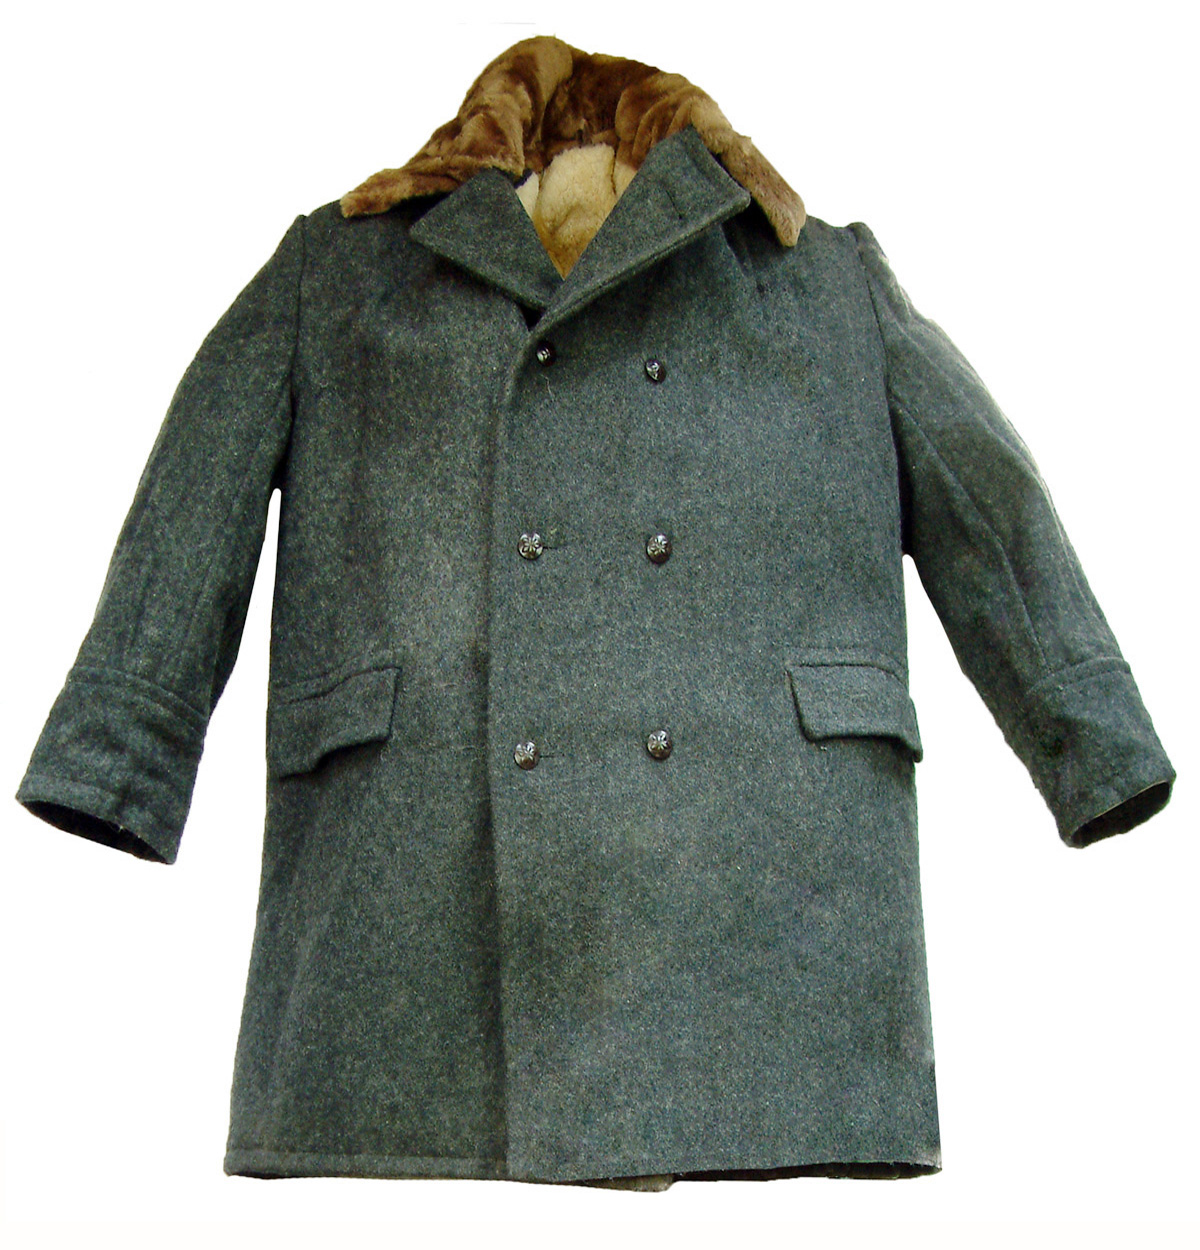 M&ampG &gt&gt&gt Russian Army Soviet Issue Sheepskin Lined Great Coat